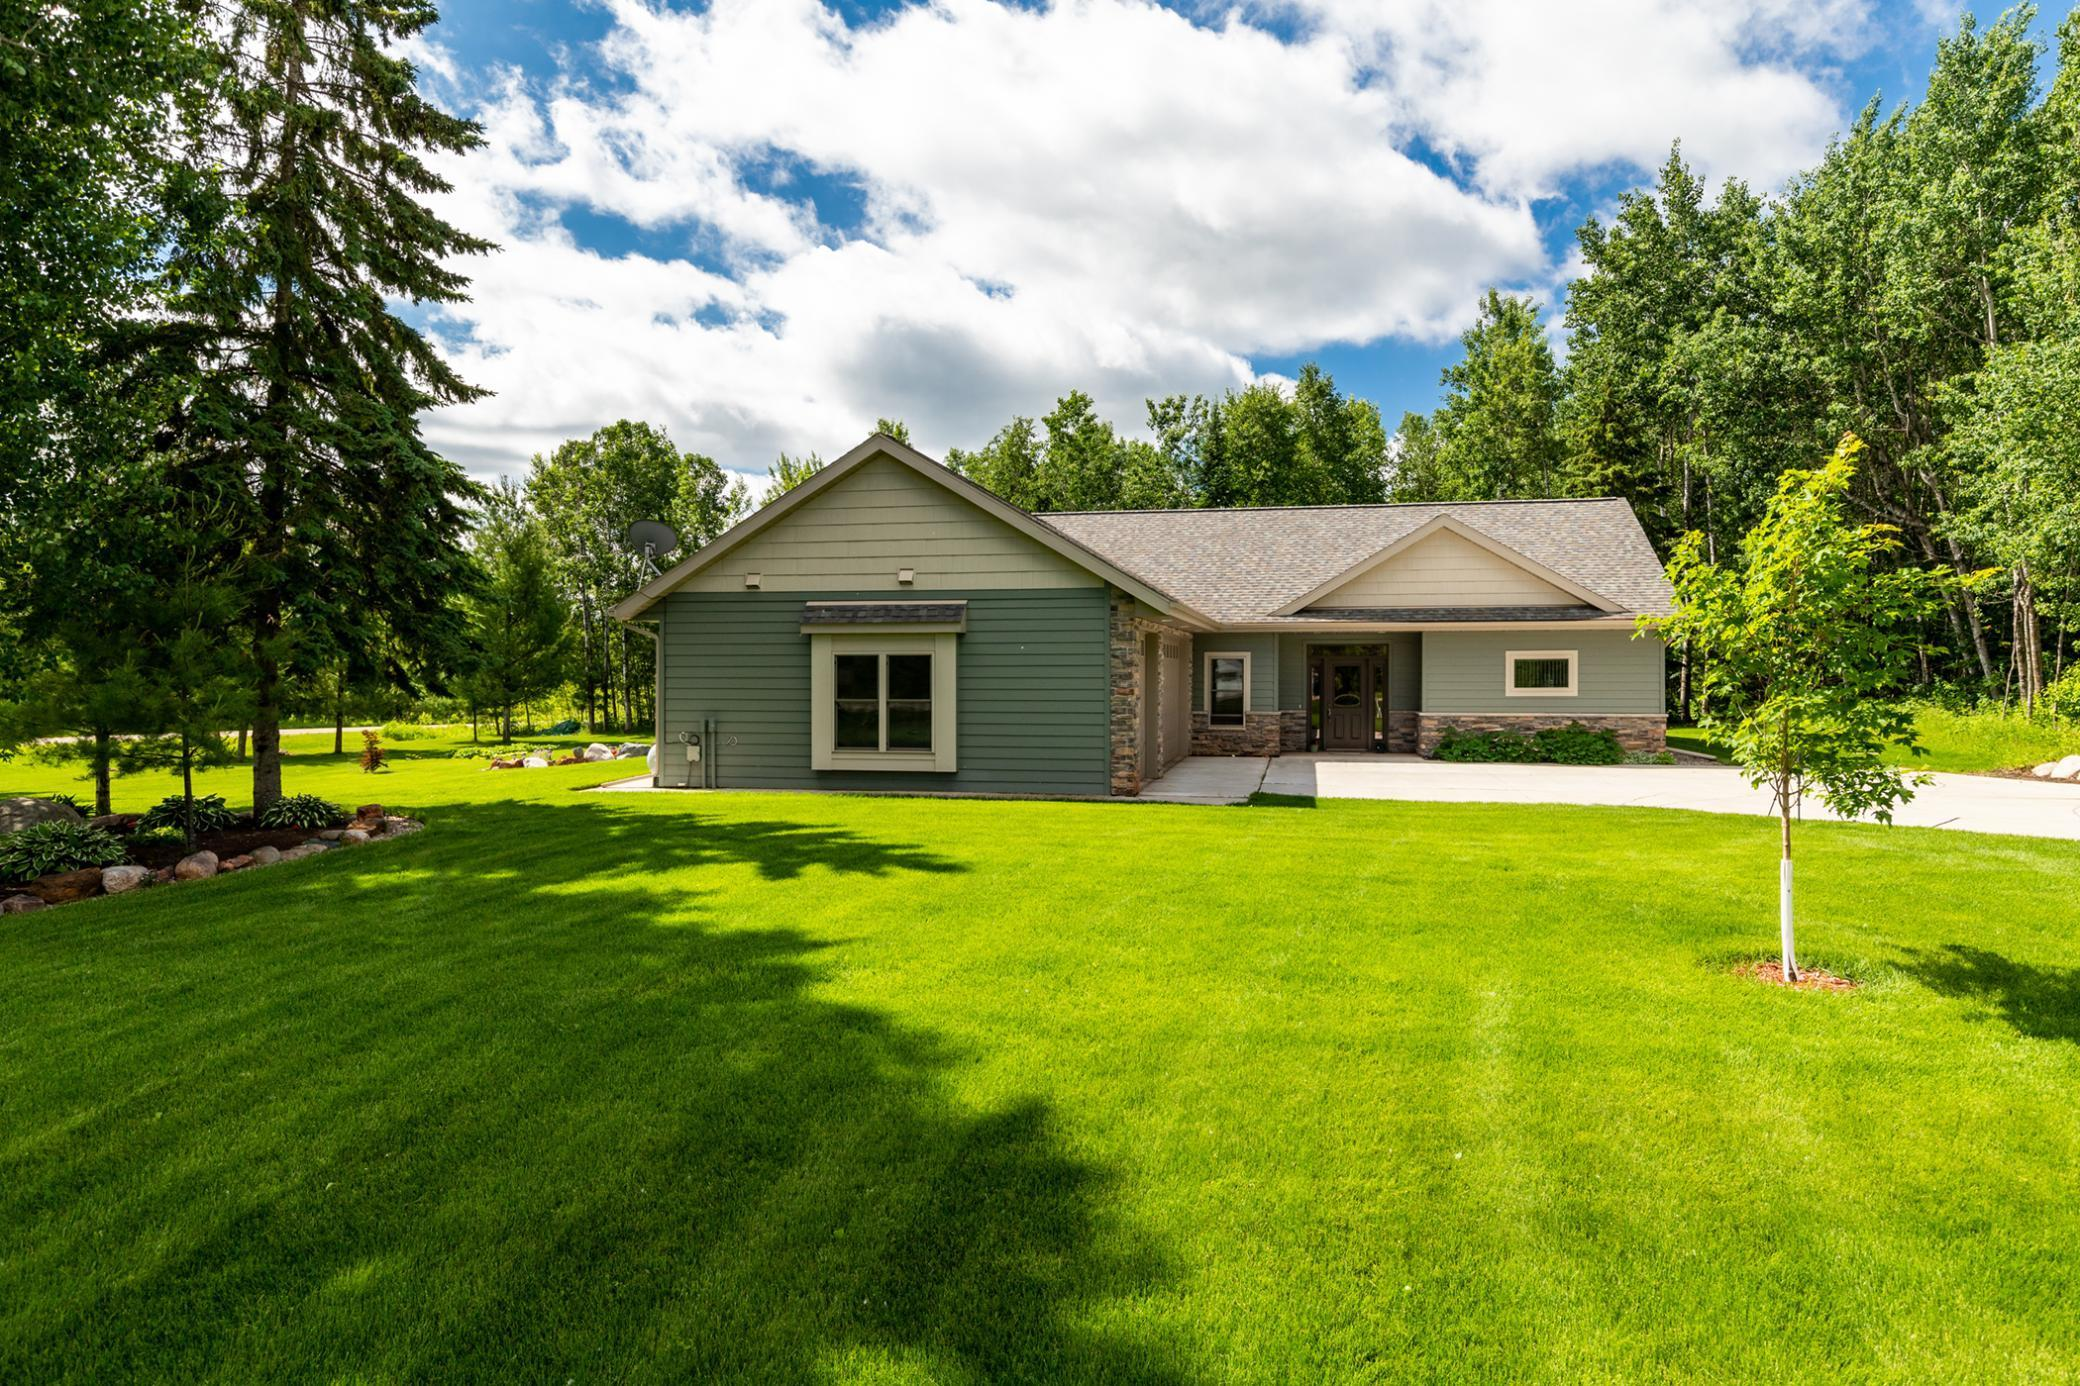 202 Birch Lane S Property Photo - Coleraine, MN real estate listing